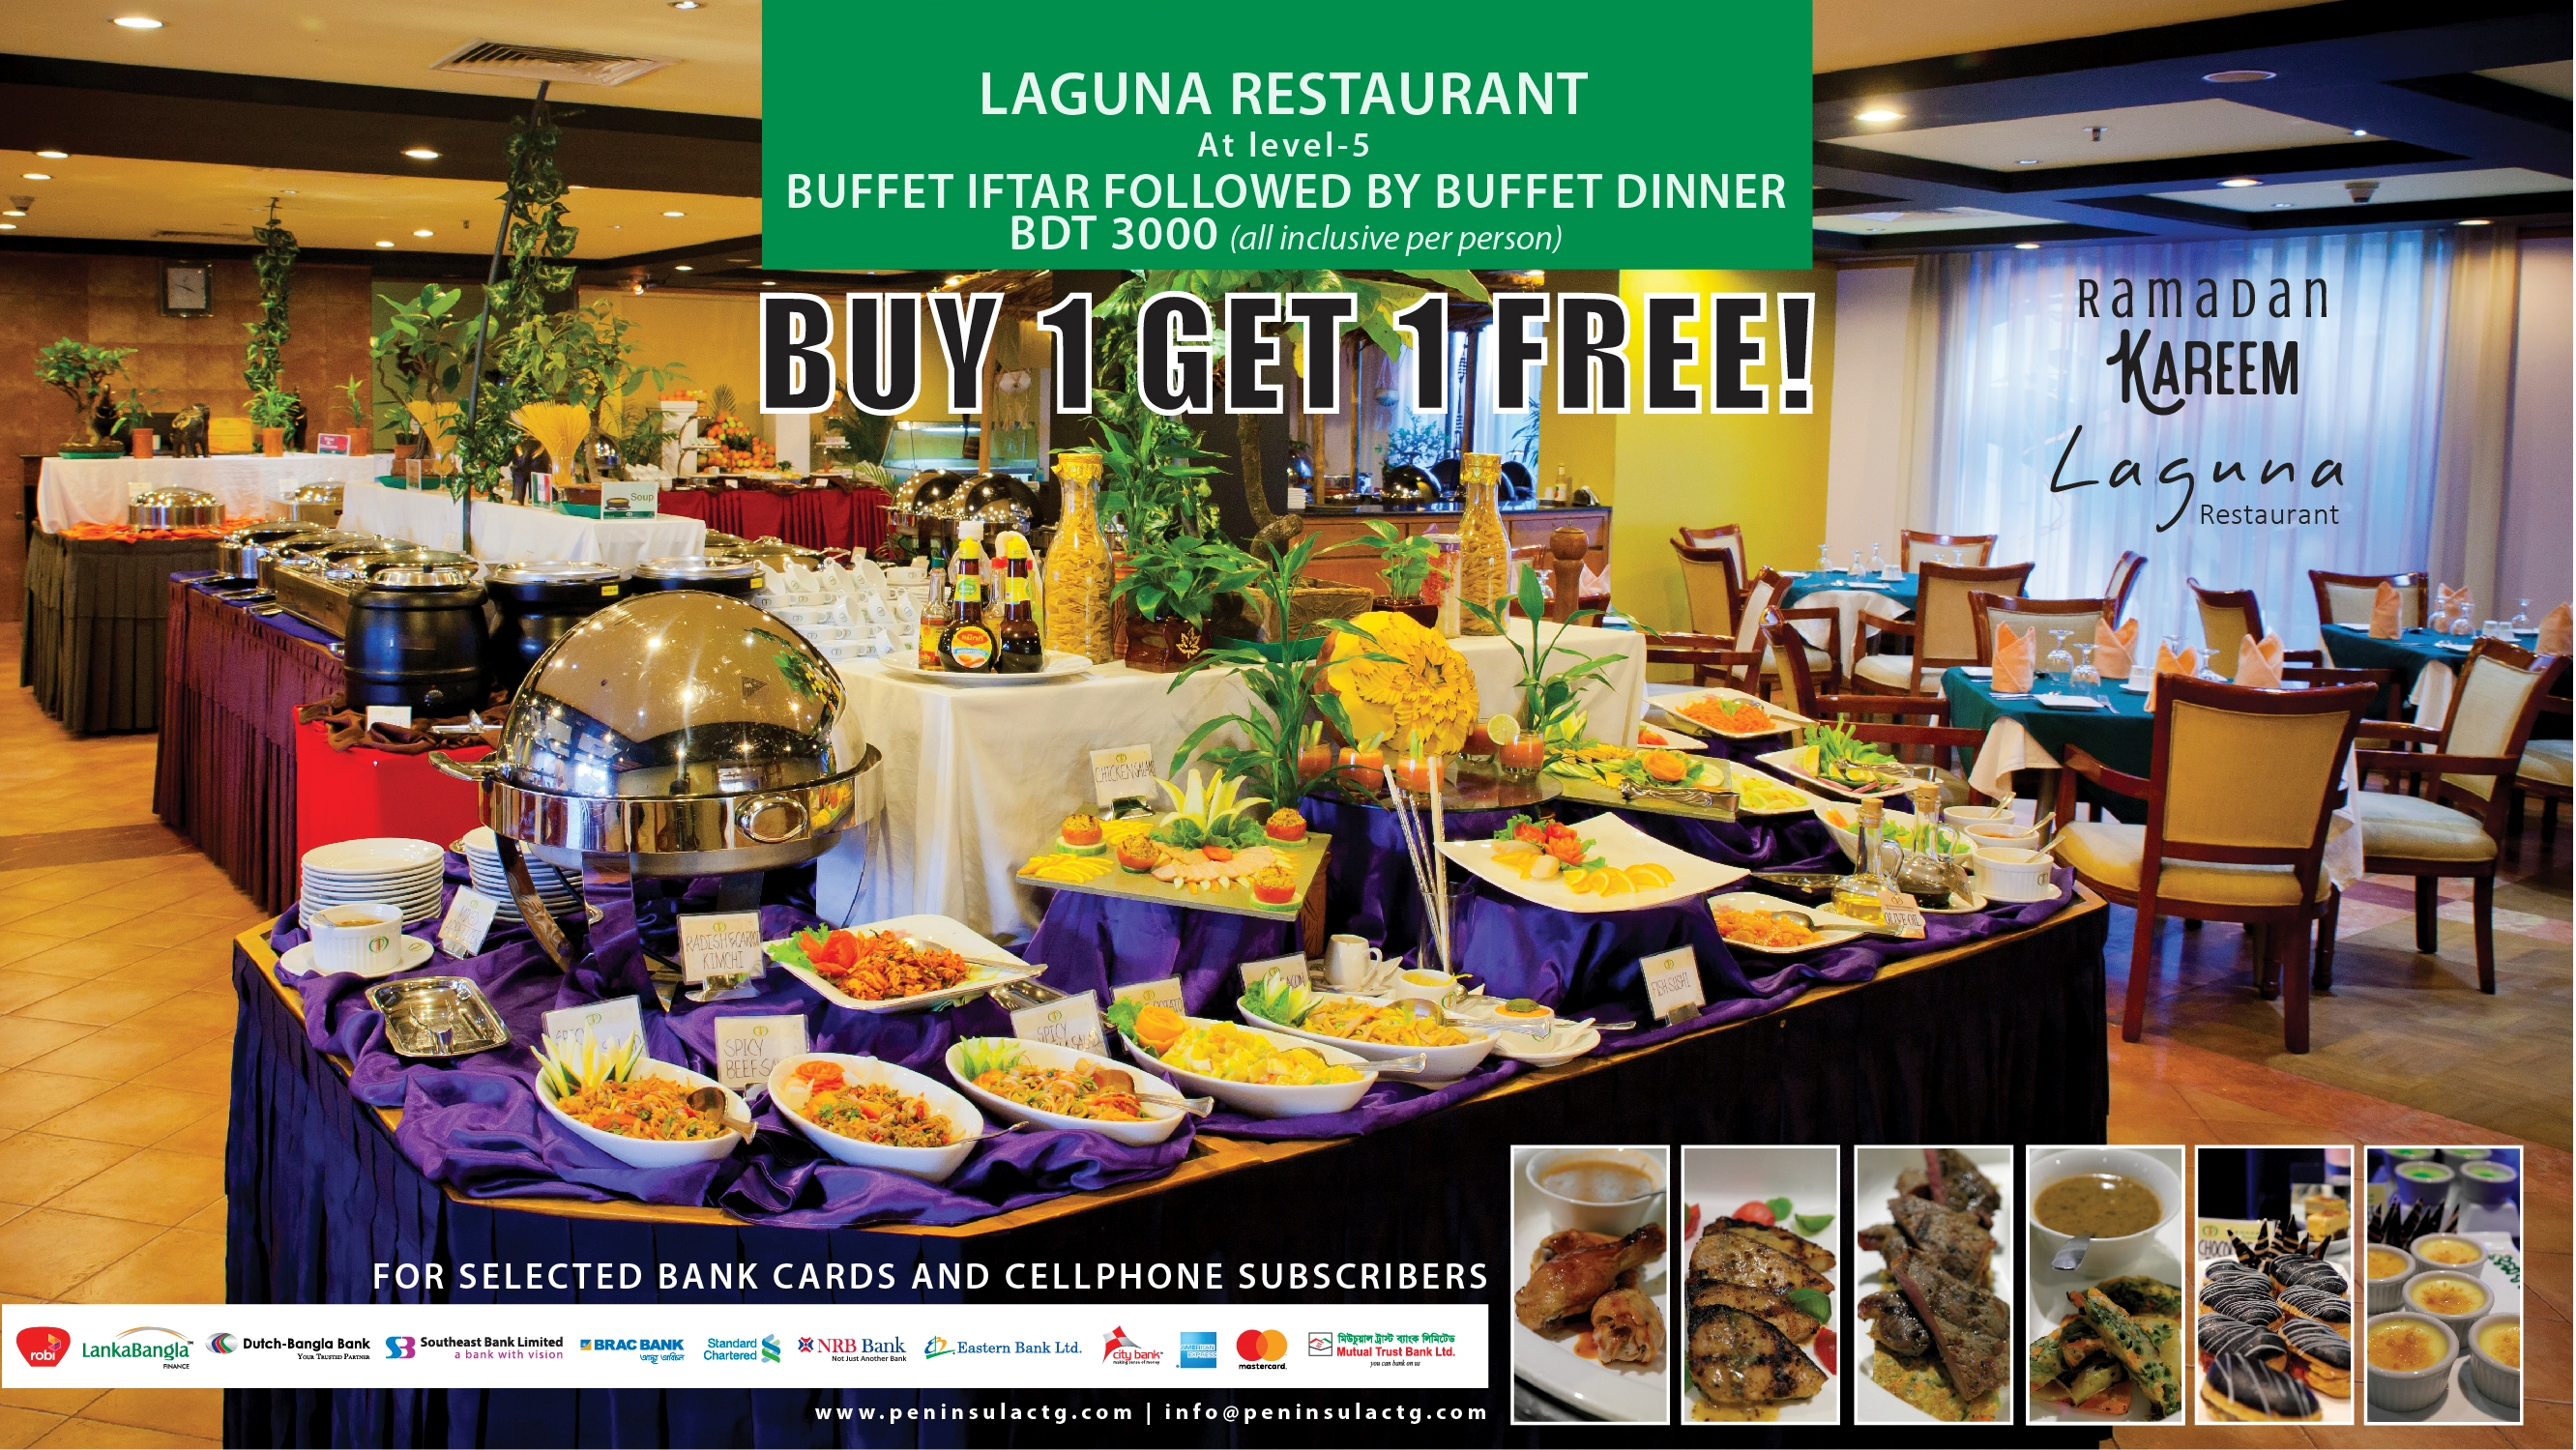 BUY 1 GET 1 FREE! Buffet Iftar followed by dinner.